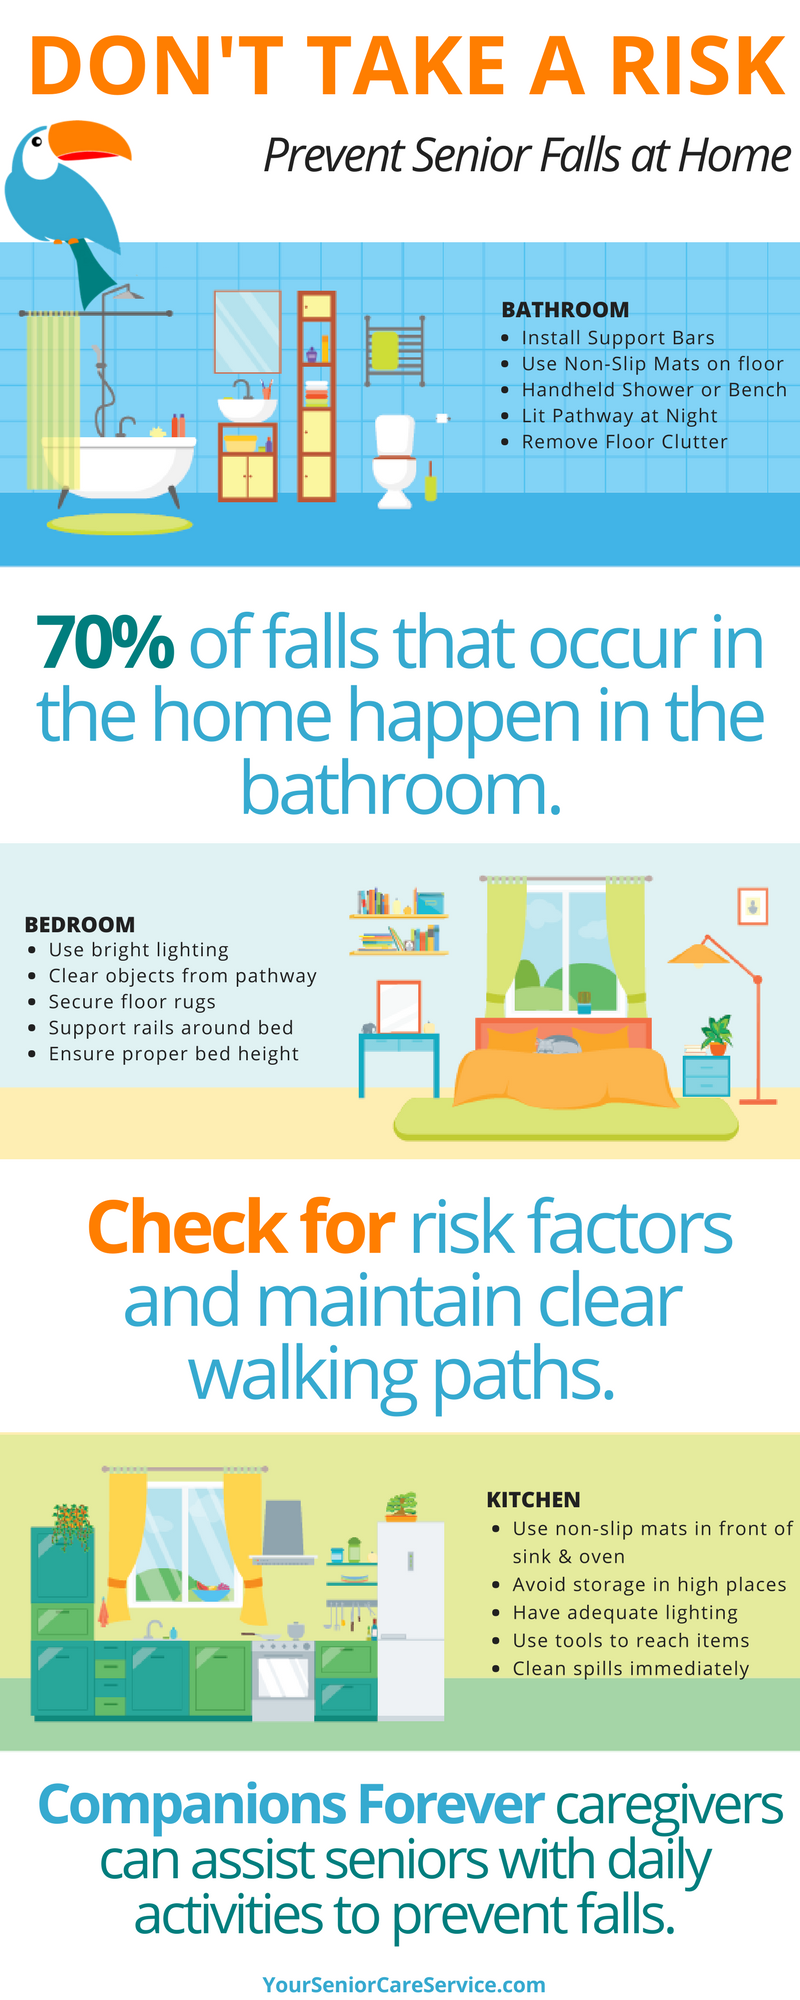 Prevent Elderly Falls at Home with Companions Forever caregivers.